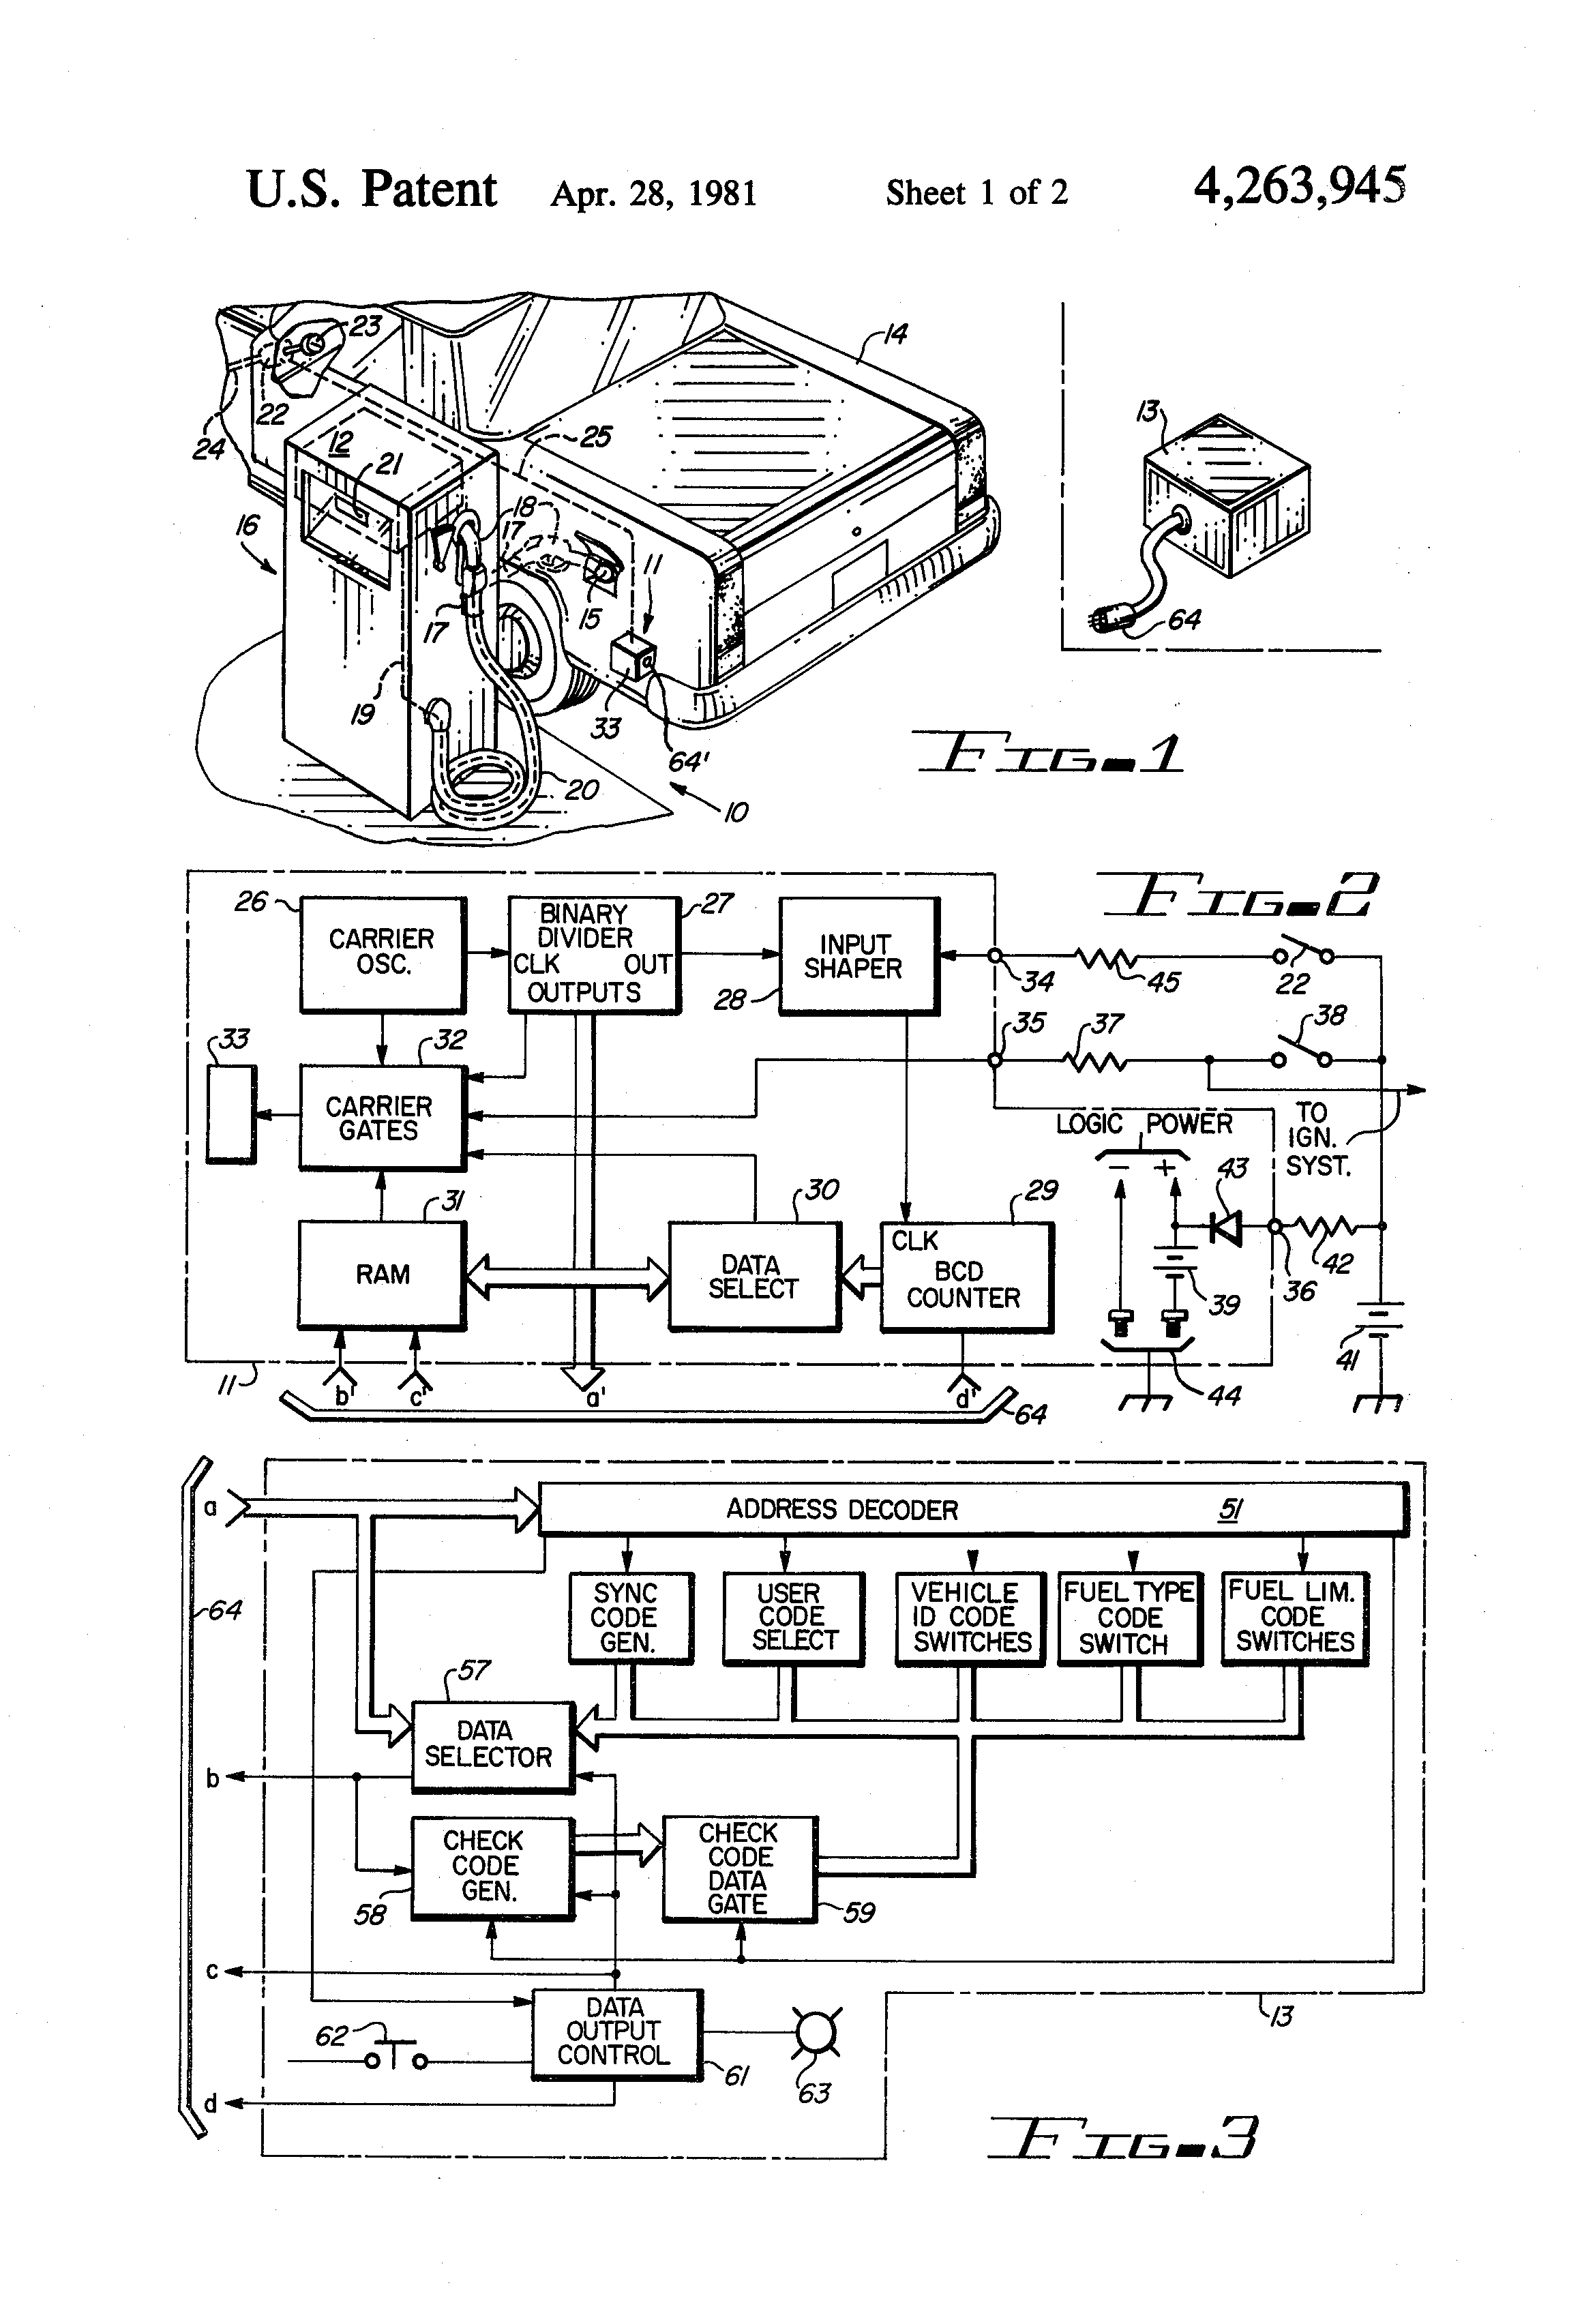 US4263945 1 patent us4263945 automatic fuel dispensing control system gilbarco advantage wiring diagram at n-0.co